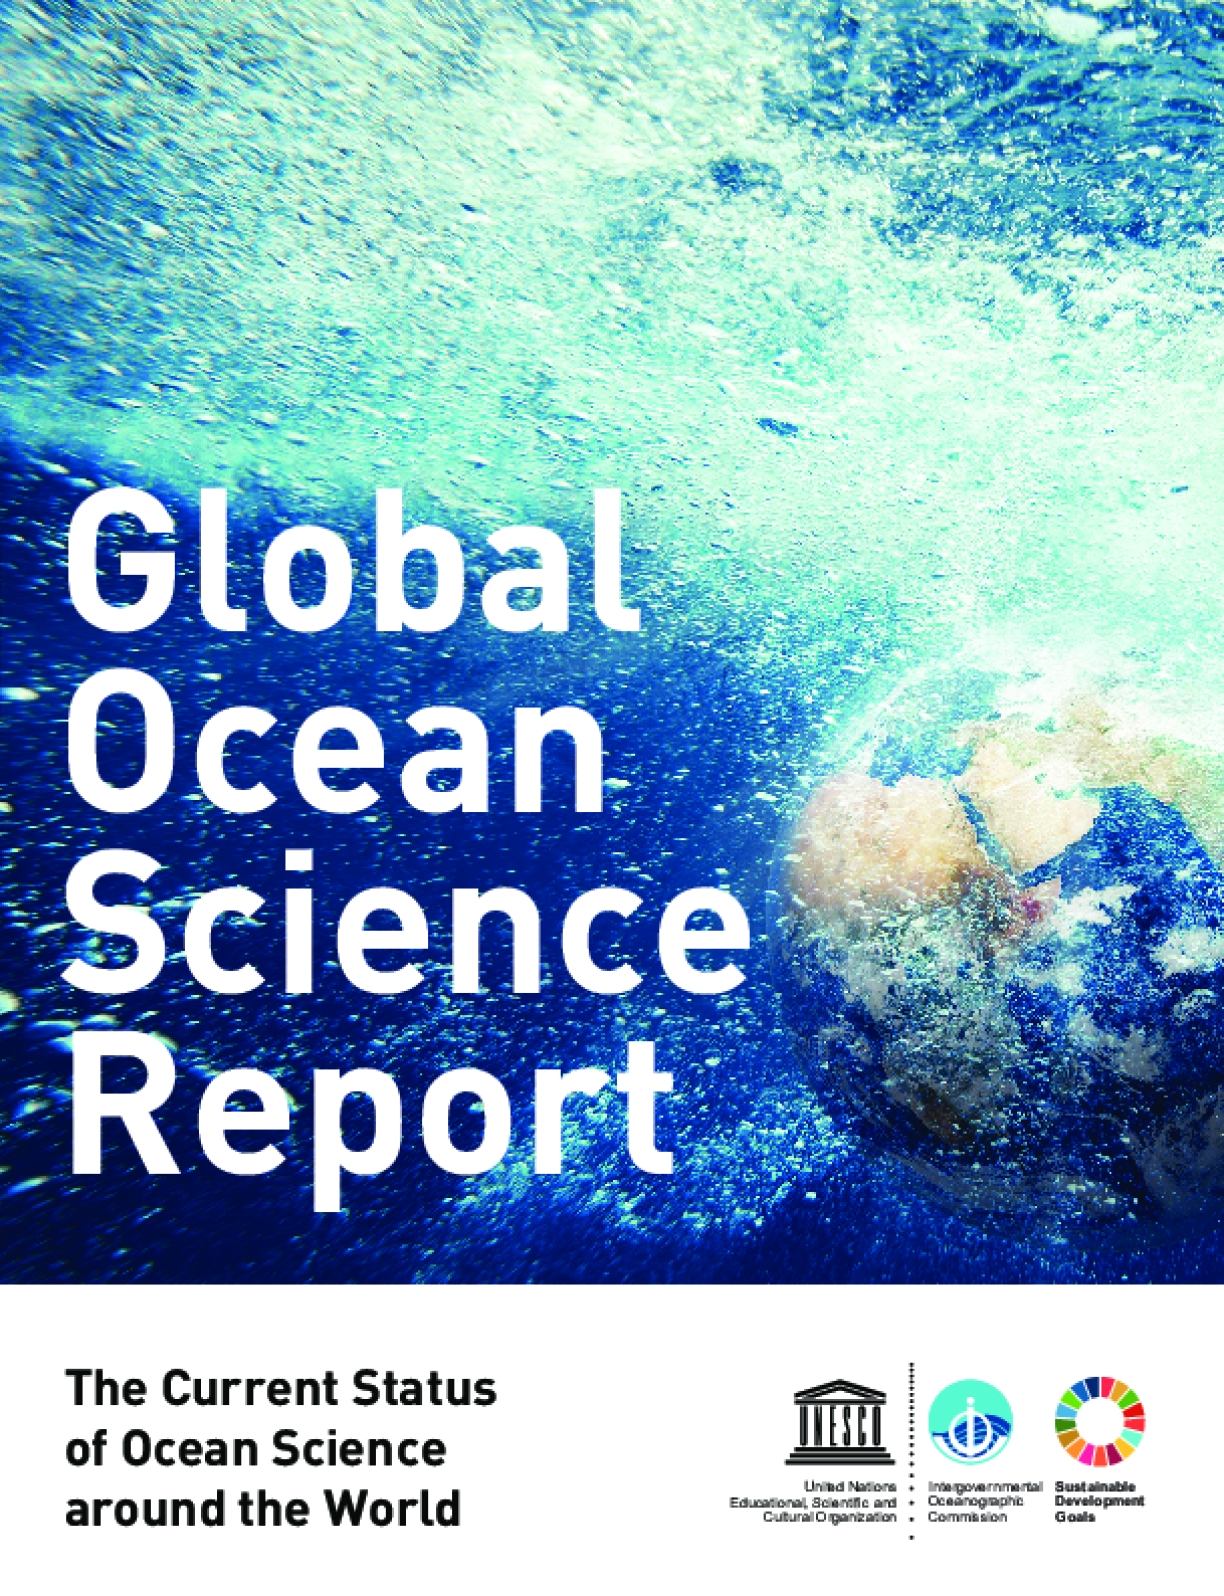 Global Ocean Science Report: The Current Status of Ocean Science around the World